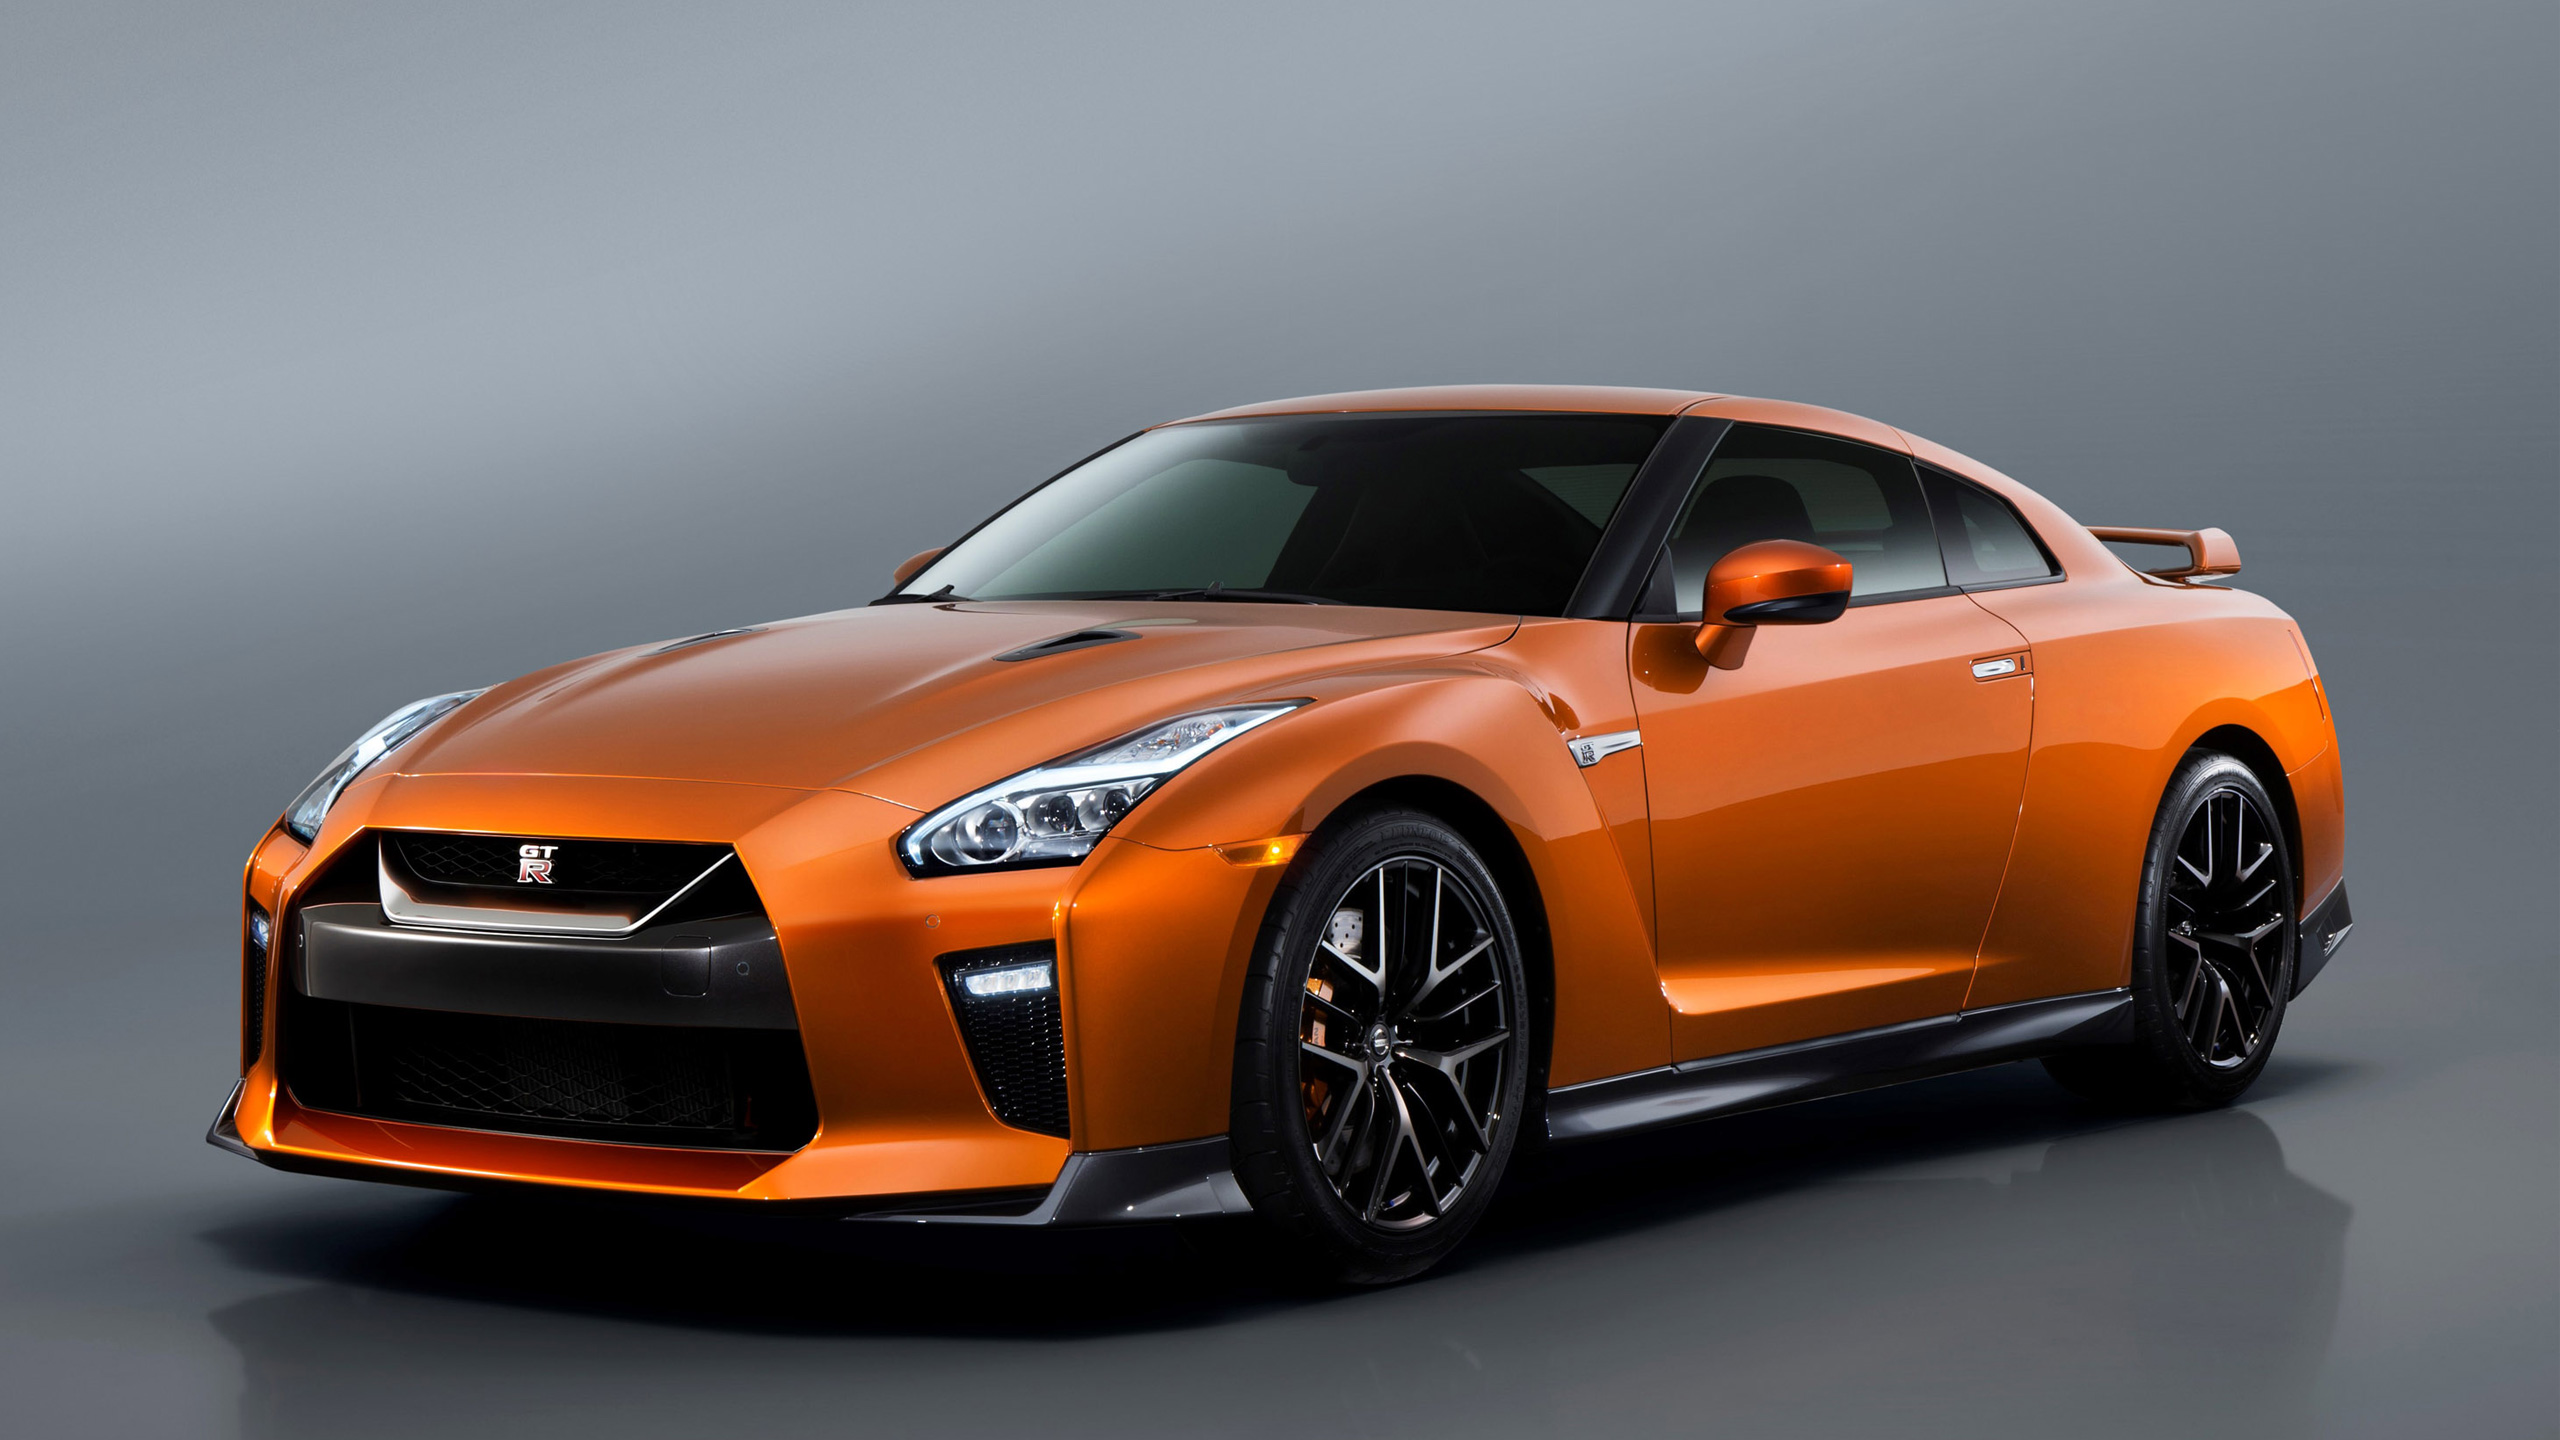 2017 Nissan Gtr Wallpaper Hd Car Wallpapers Id 6346